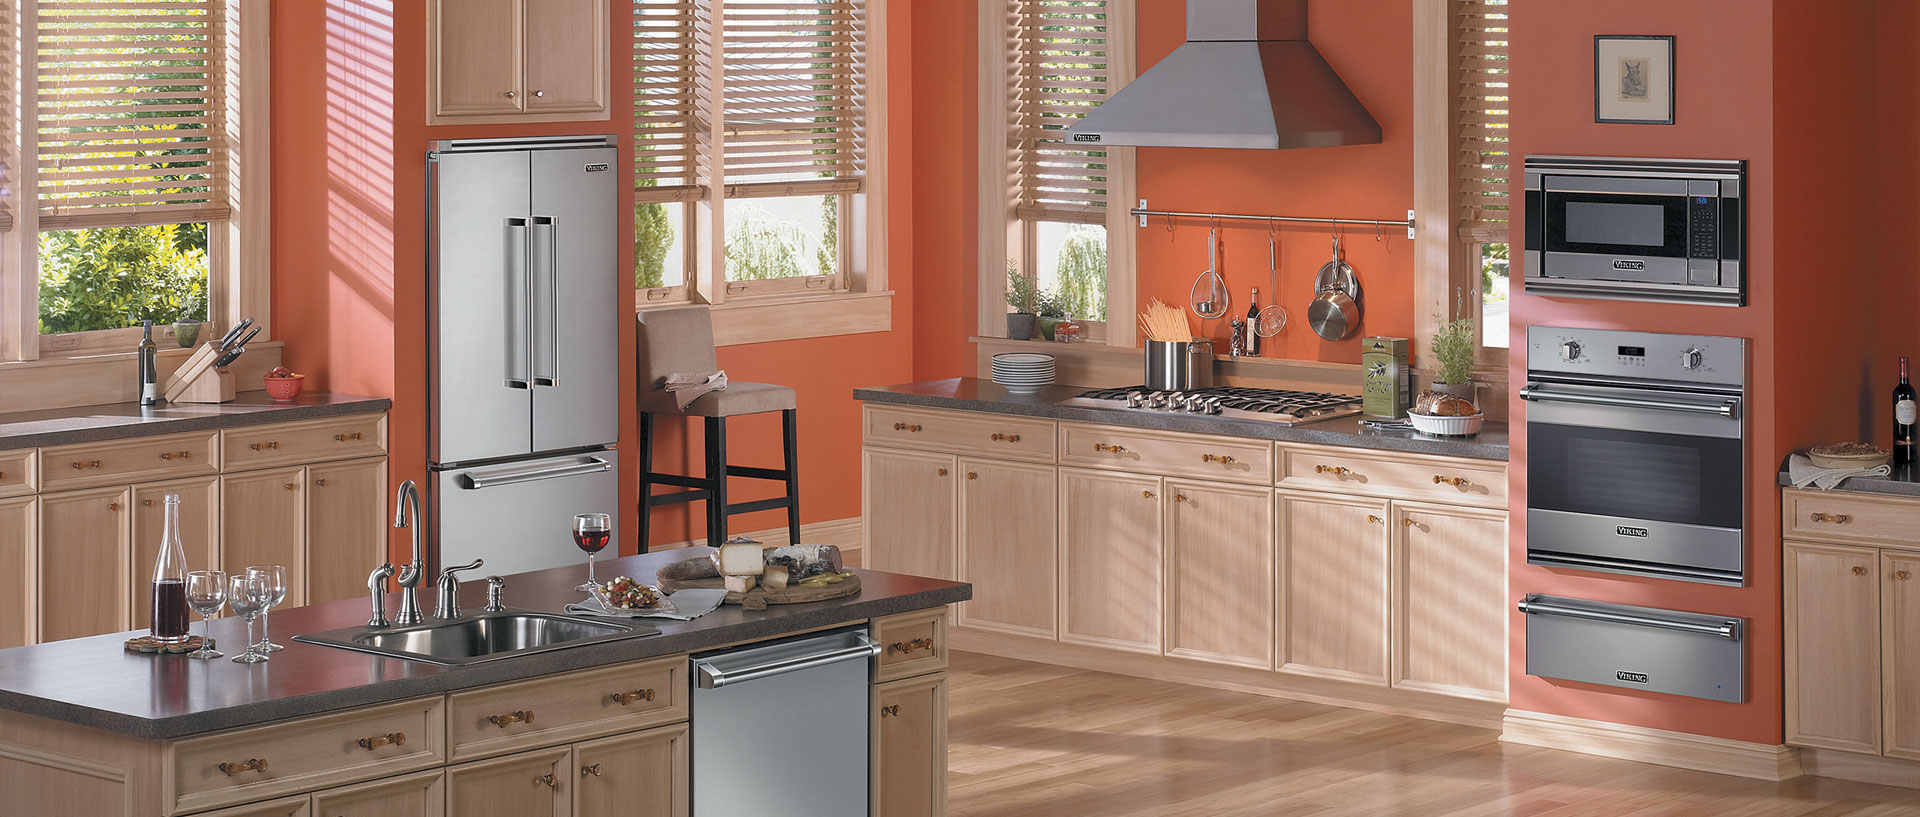 A Viking Kitchen Is The Heart Of Any Home. Viking Appliances, Like The Ones